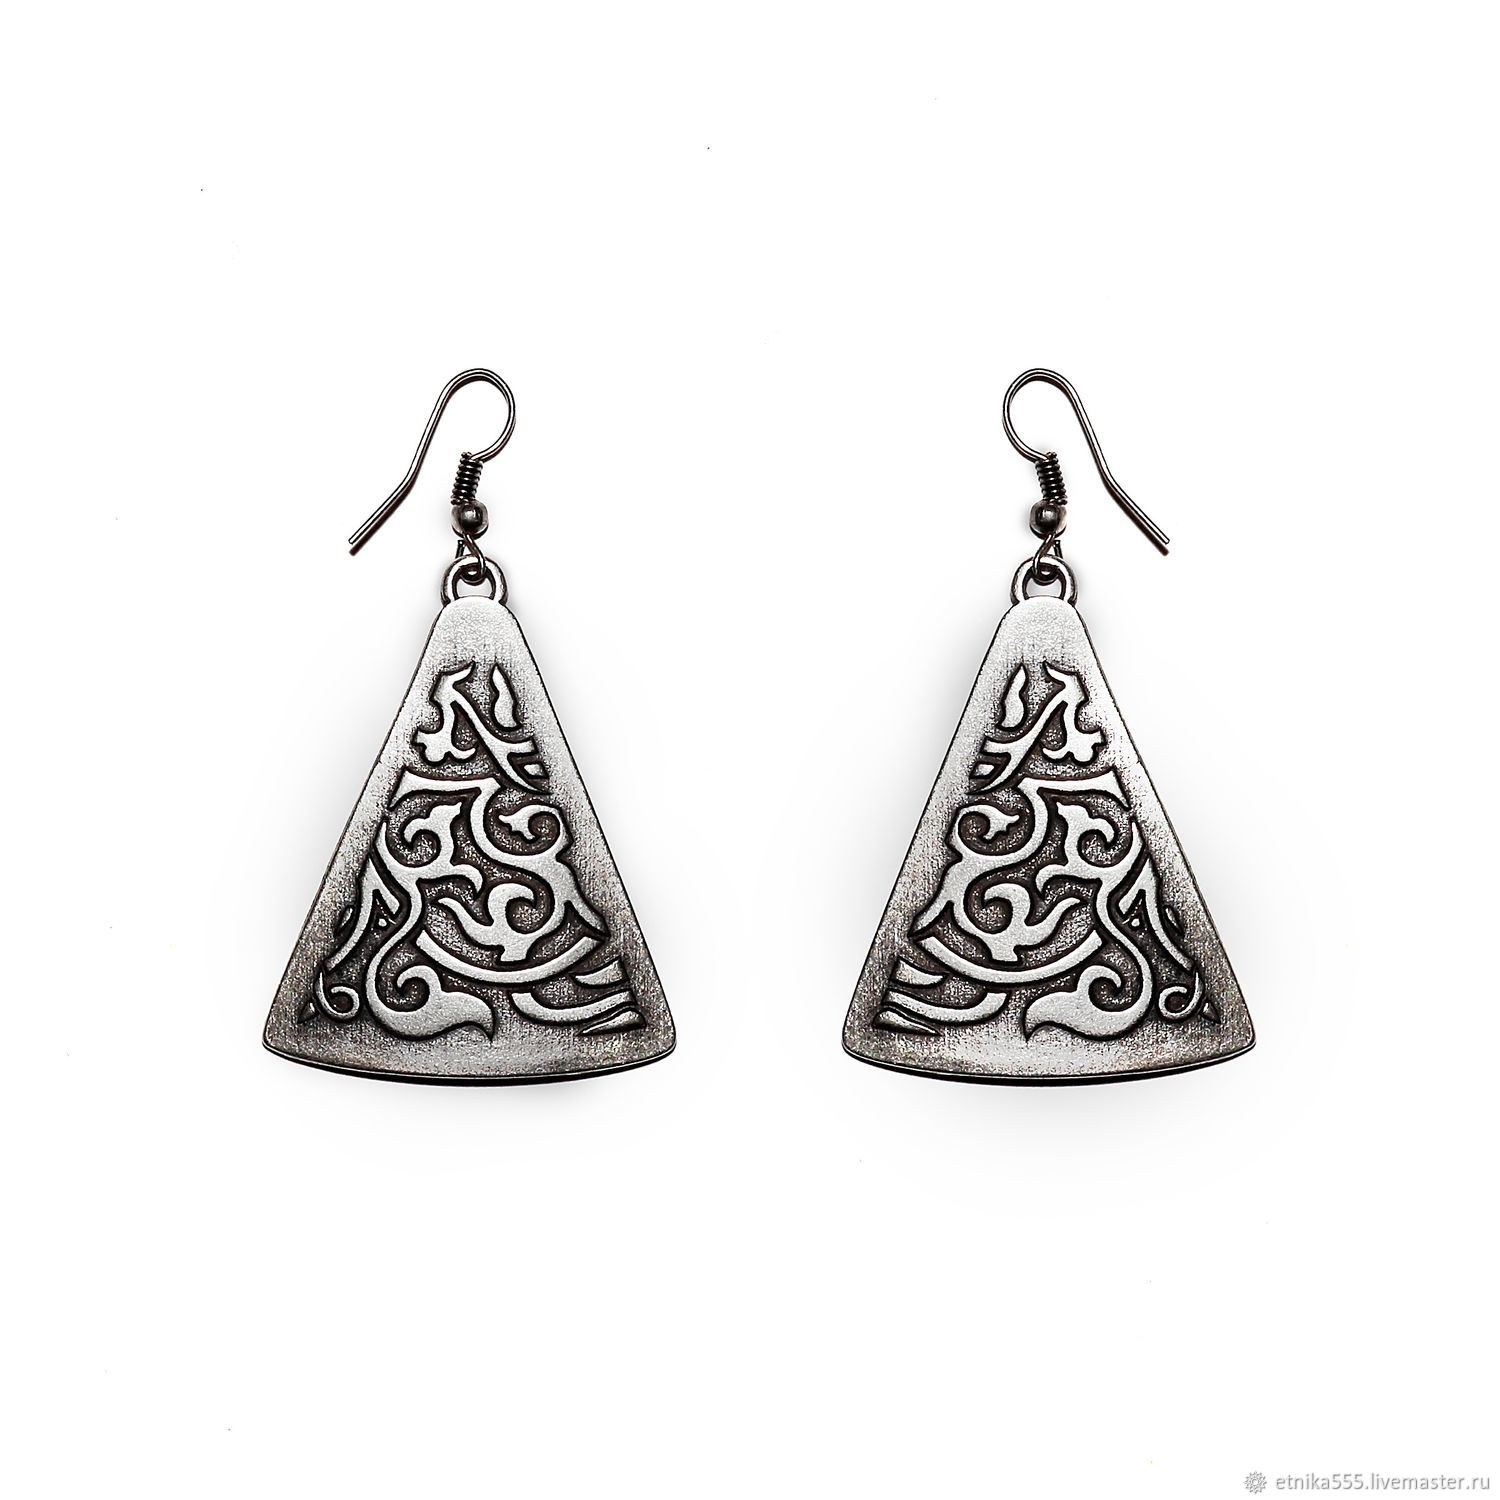 Earrings Handmade Livemaster Flavia Triangular In Byzantine Style